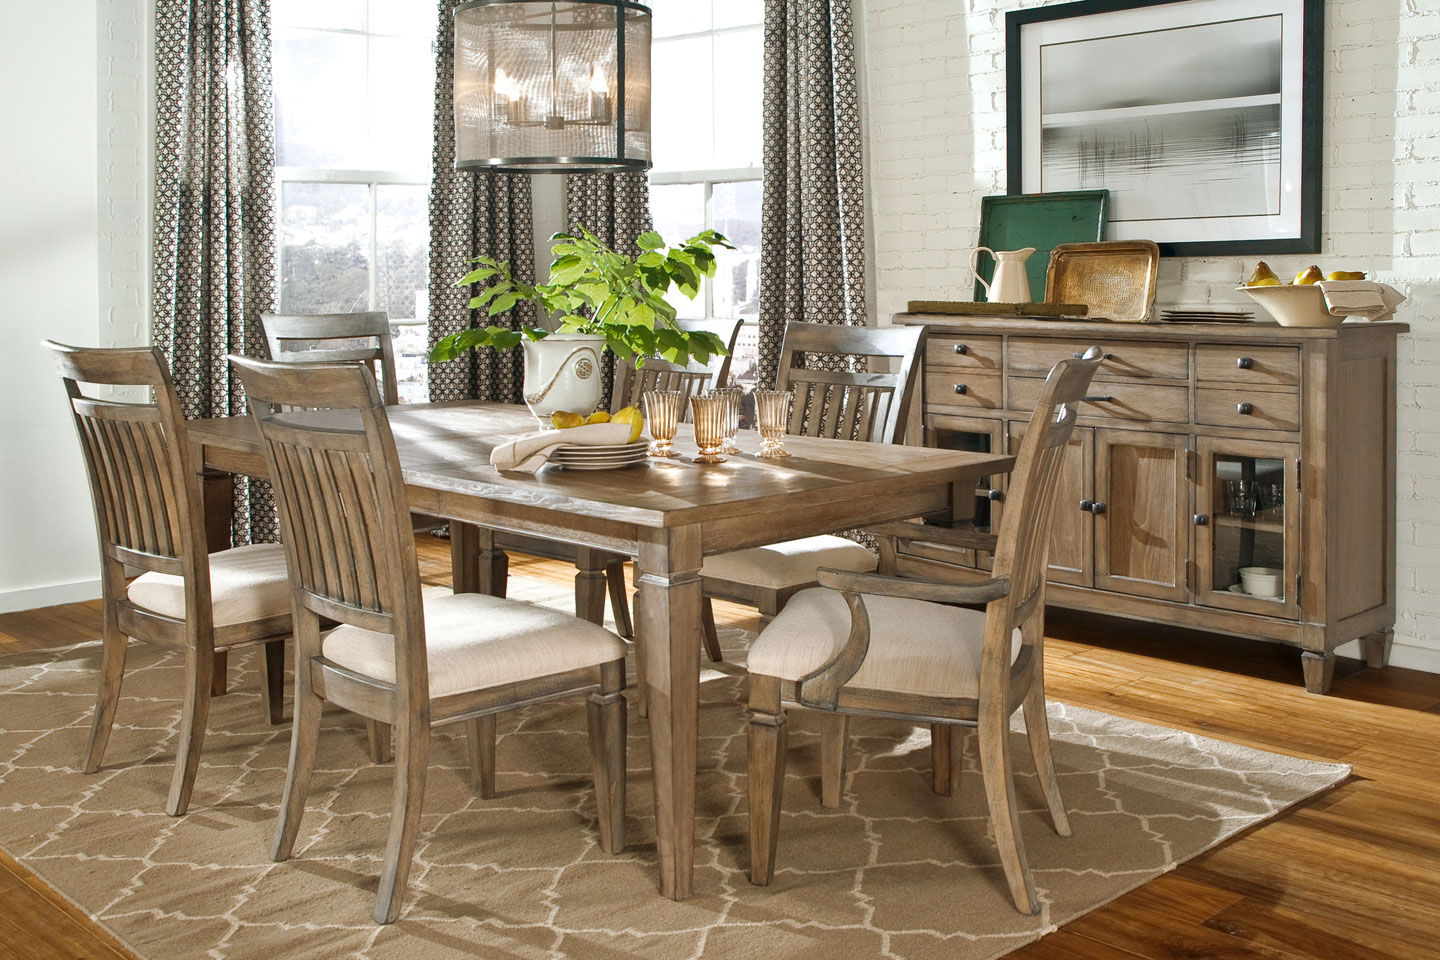 gavin rustic dining room set dining furniture crosley country kitchen wall phone ii rc willey